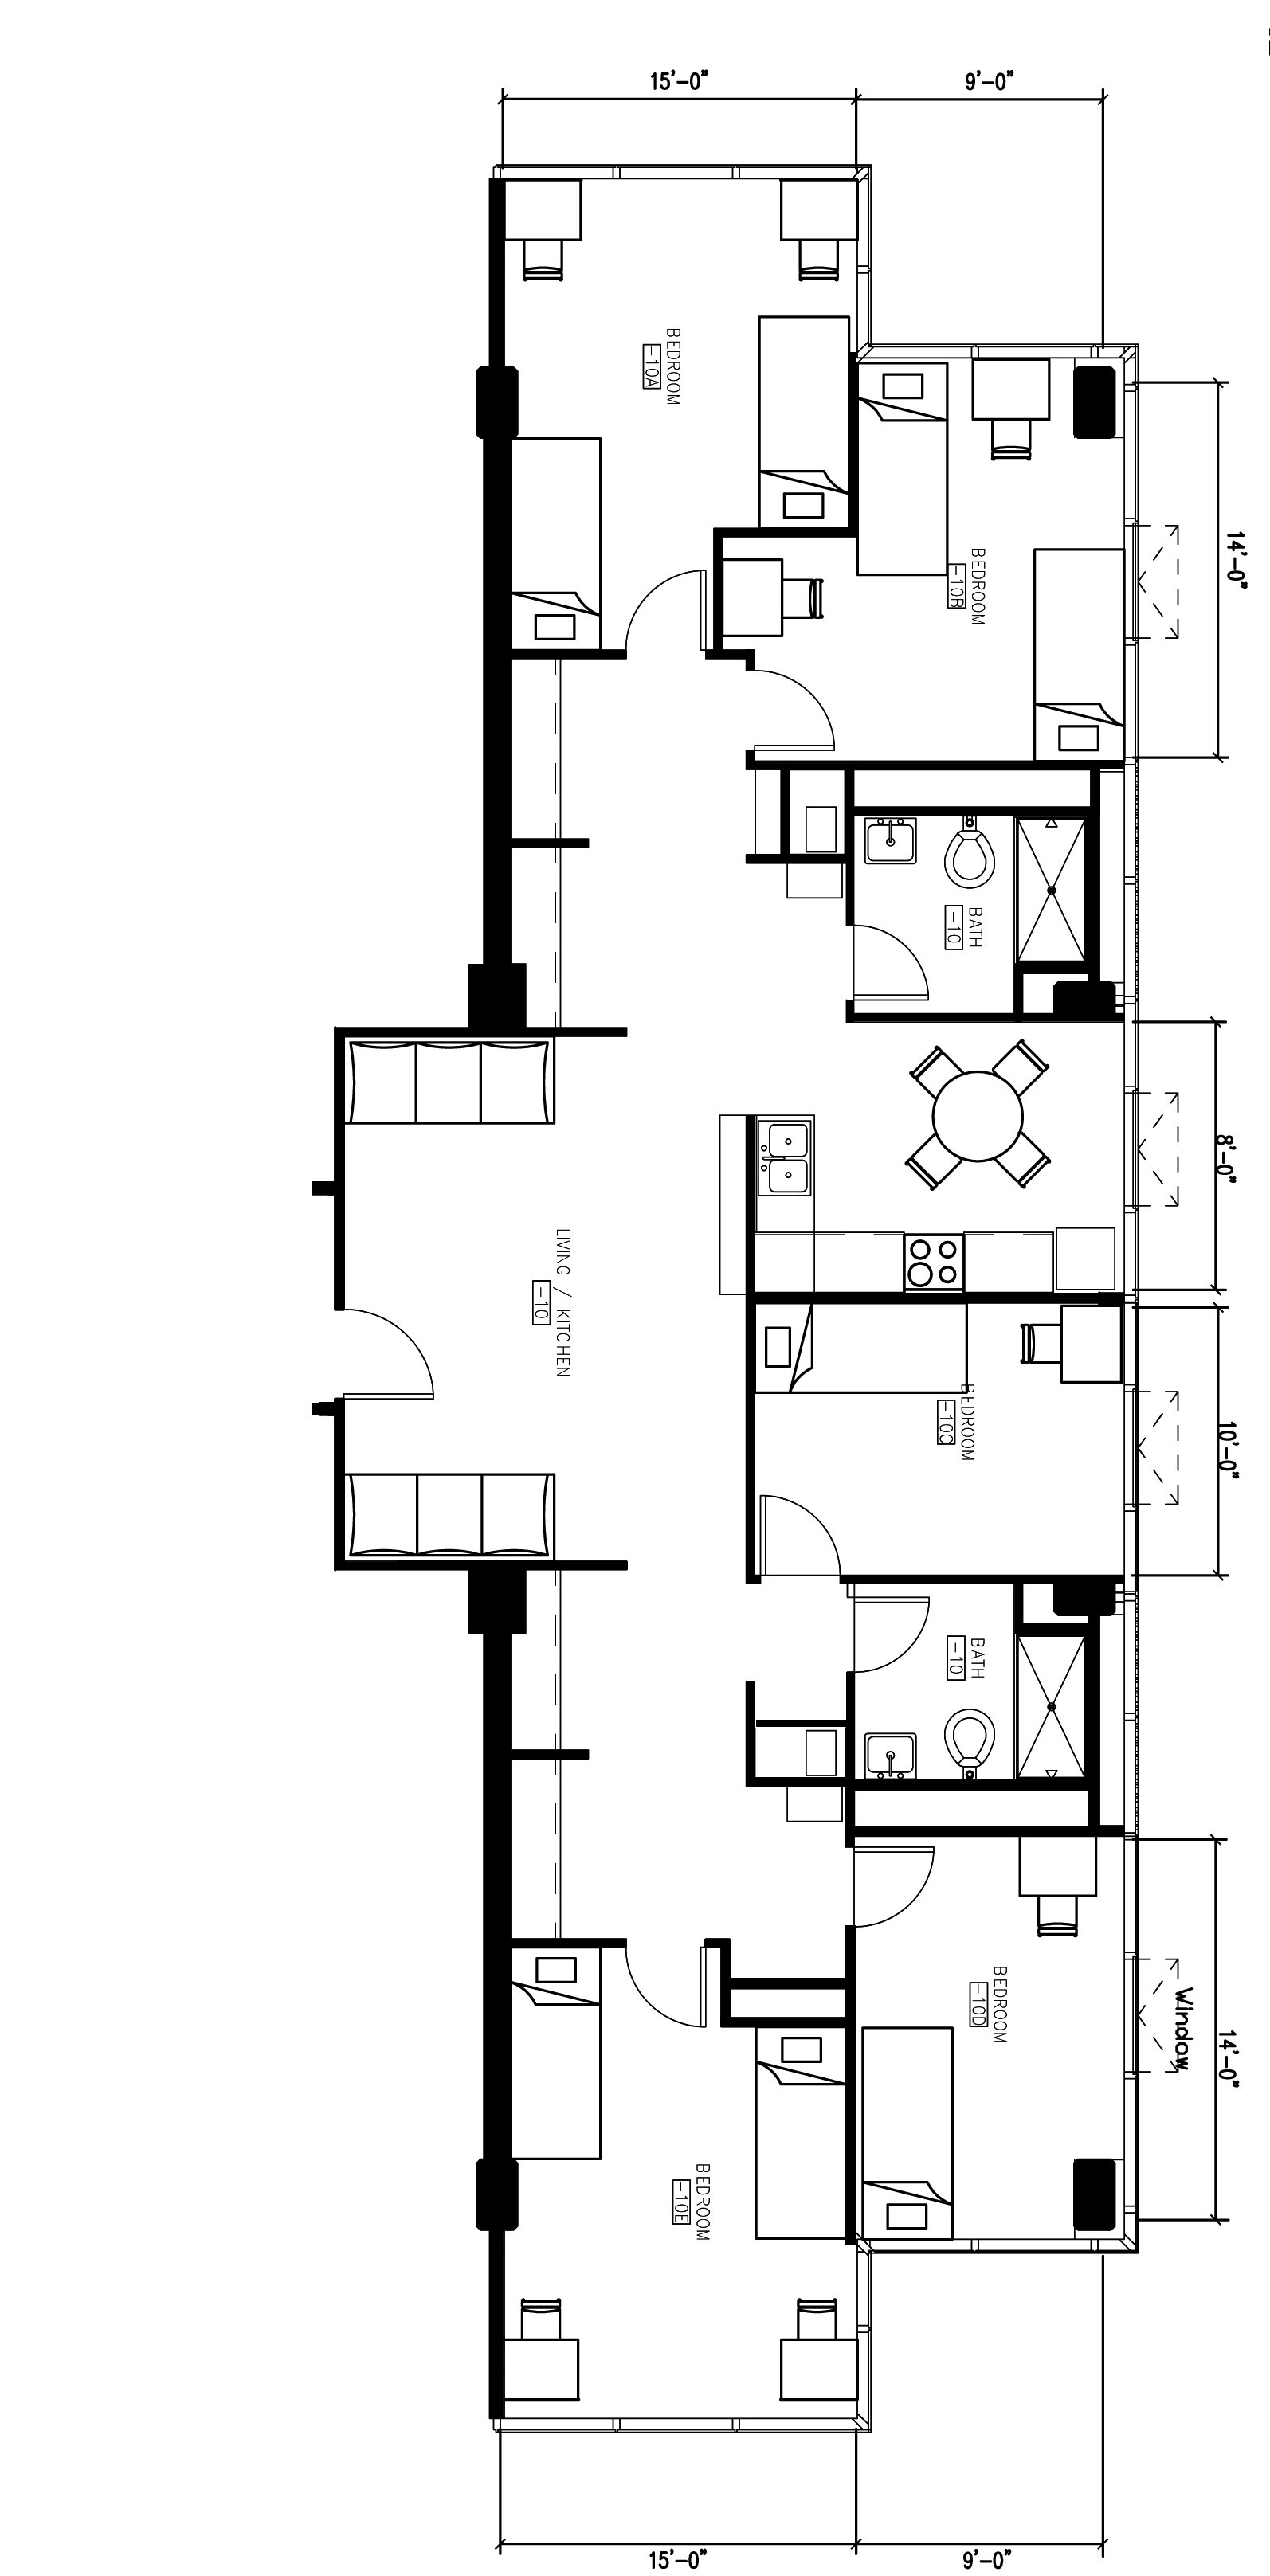 Morgens Hall 8 Person, 5 Bedroom Apartment Floor Plan